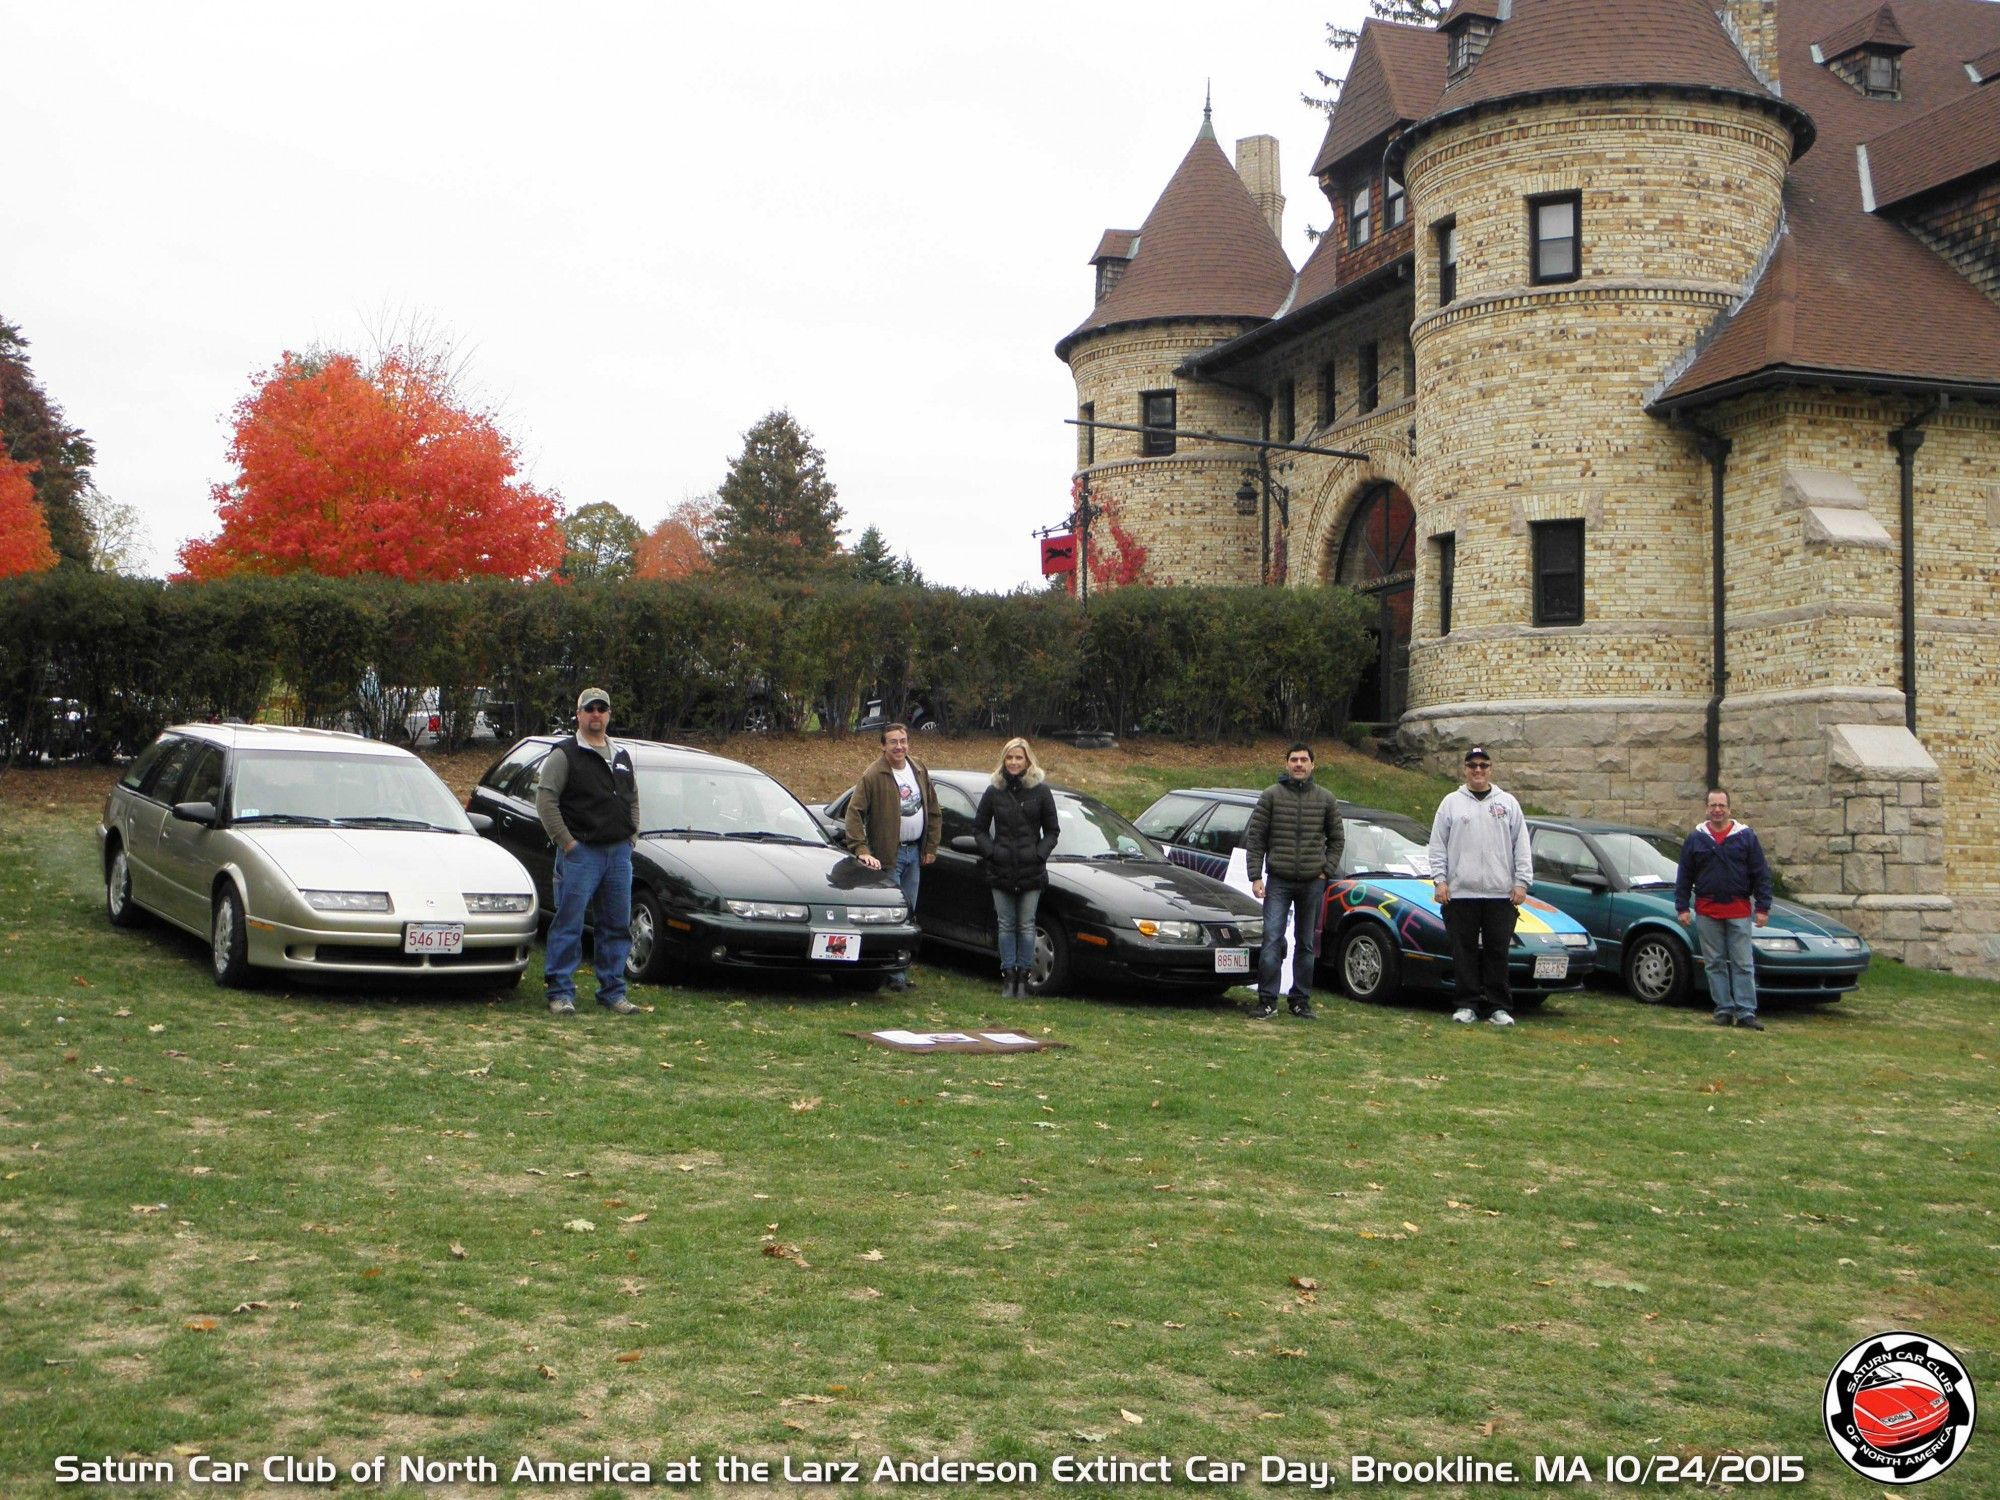 Sccna At Larz Anderson Extinct Car Day Boston 10 24 15 Saturnfans Photo Forums